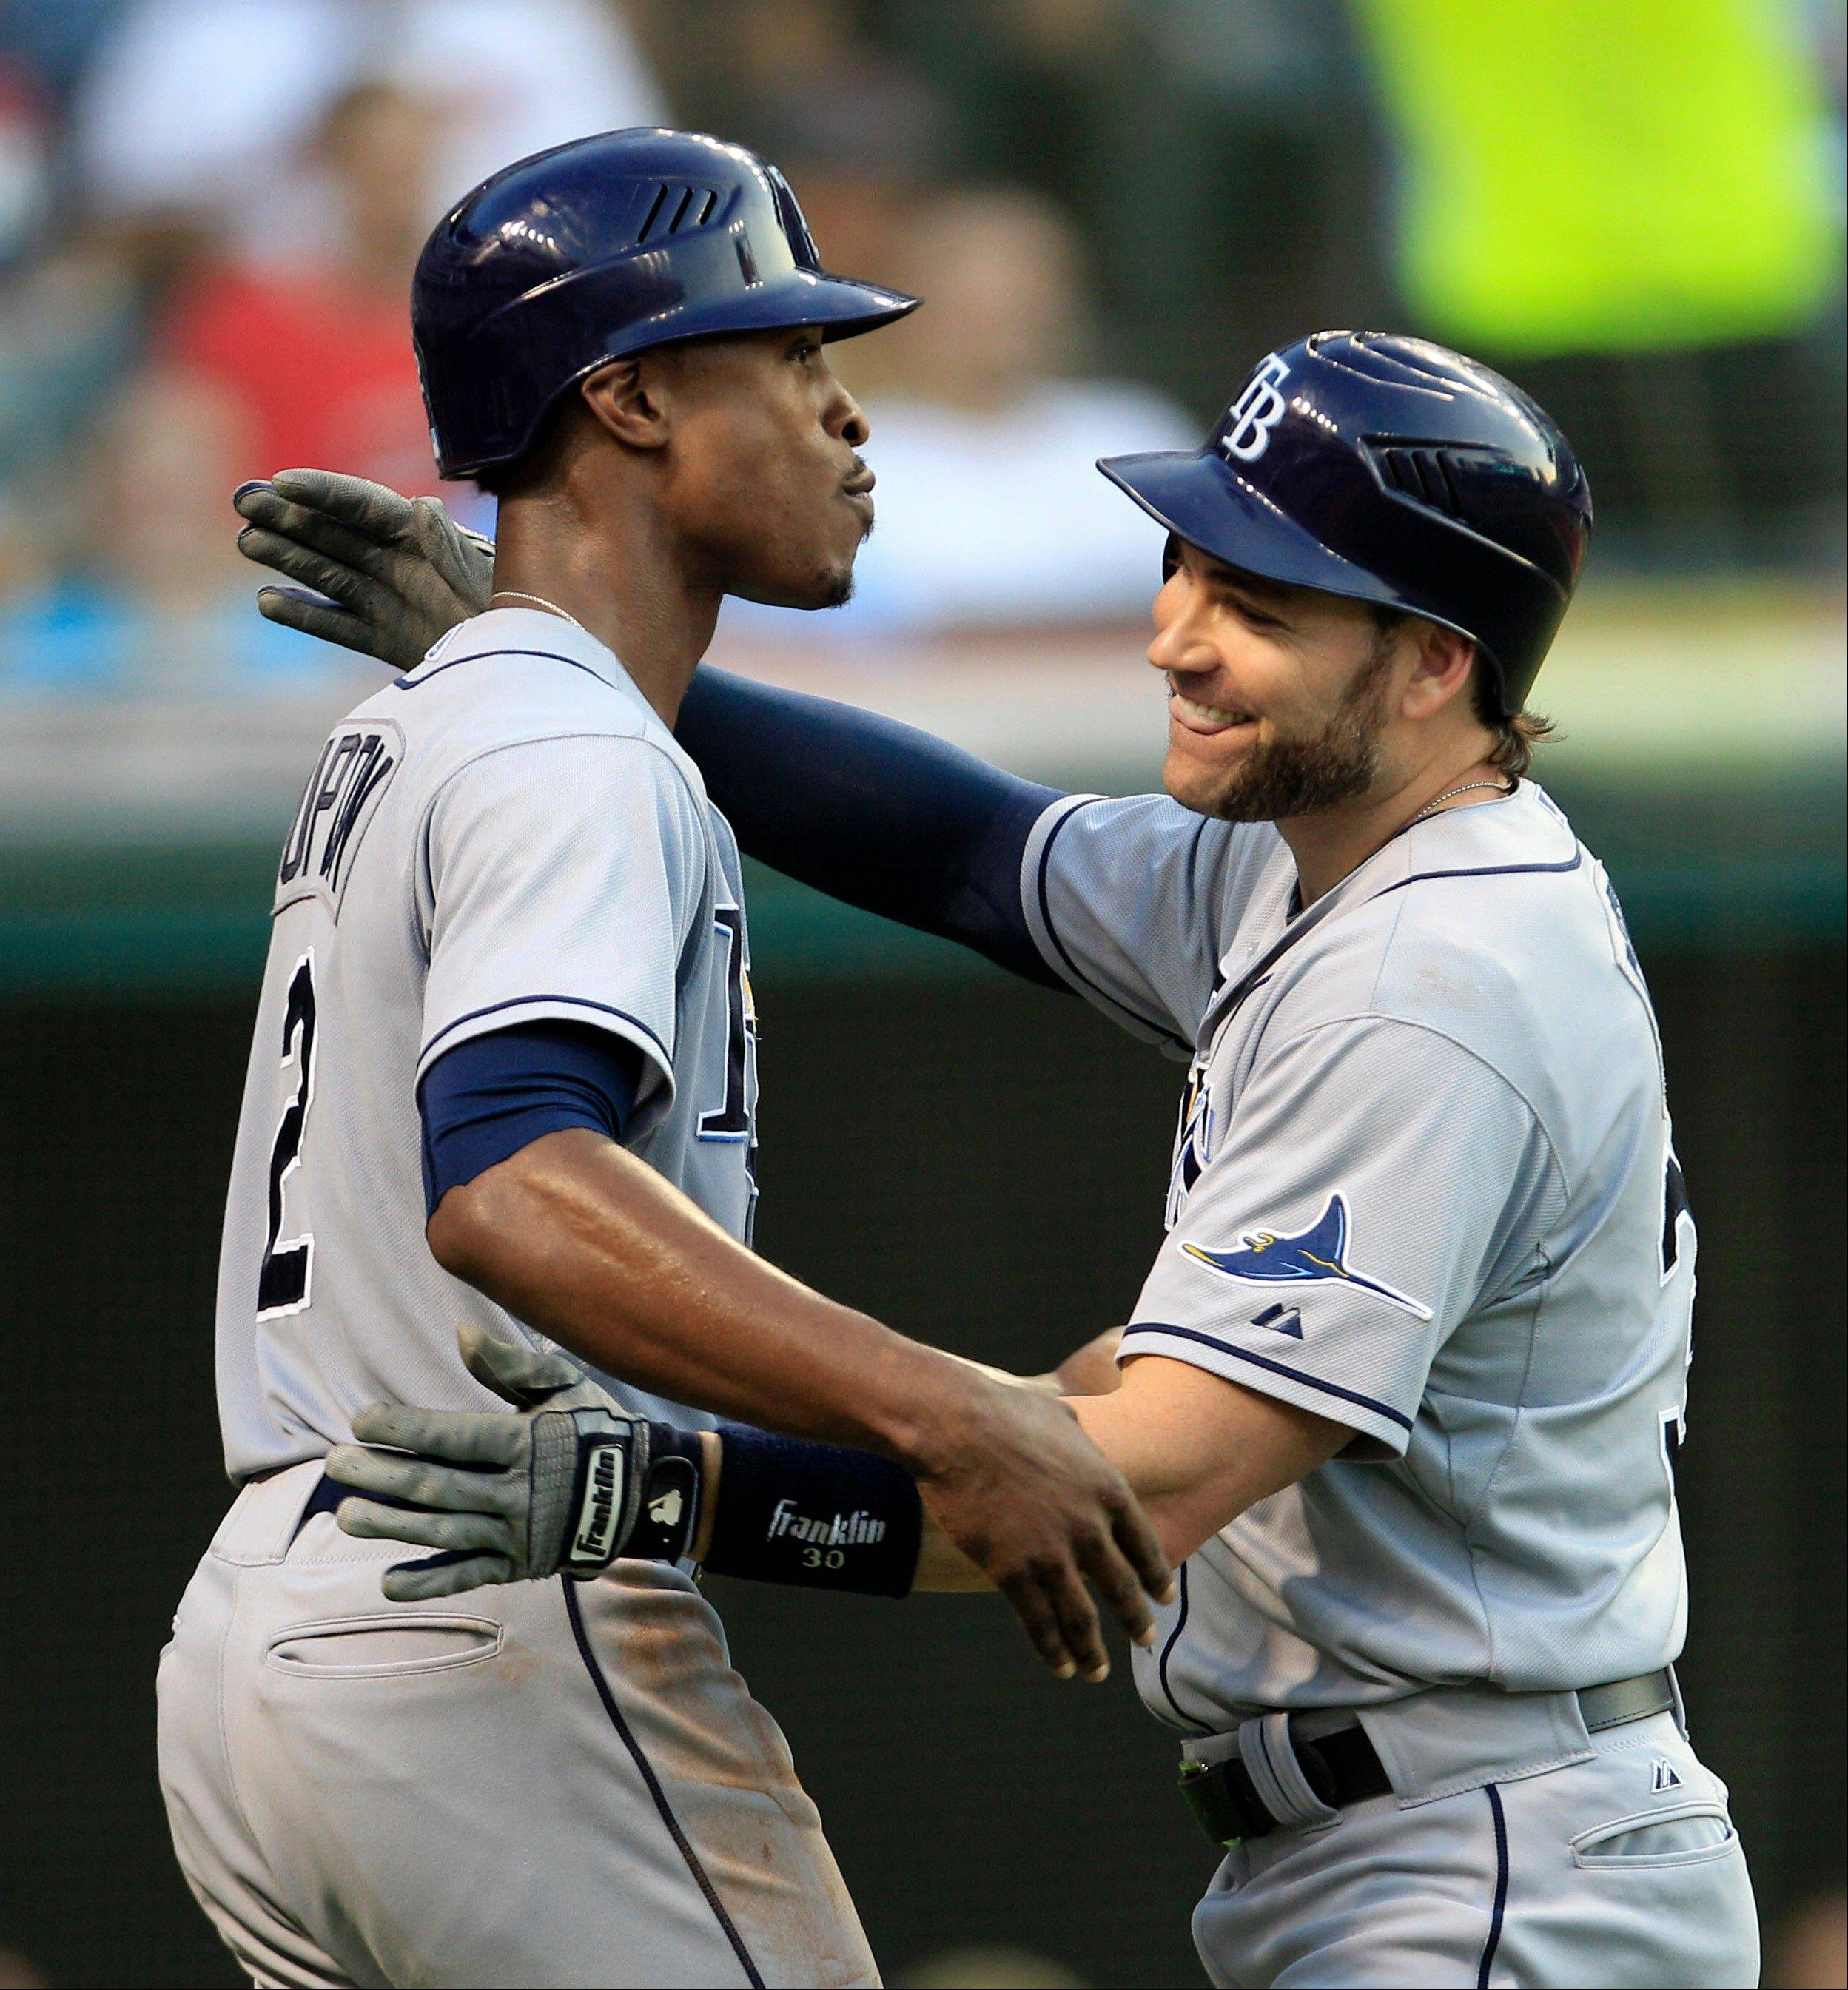 Tampa Bay's Luke Scott is congratulated by B.J. Upton, left, after hitting a two-run home run off the Indians' Justin Masterson in the fifth inning Friday in Cleveland.